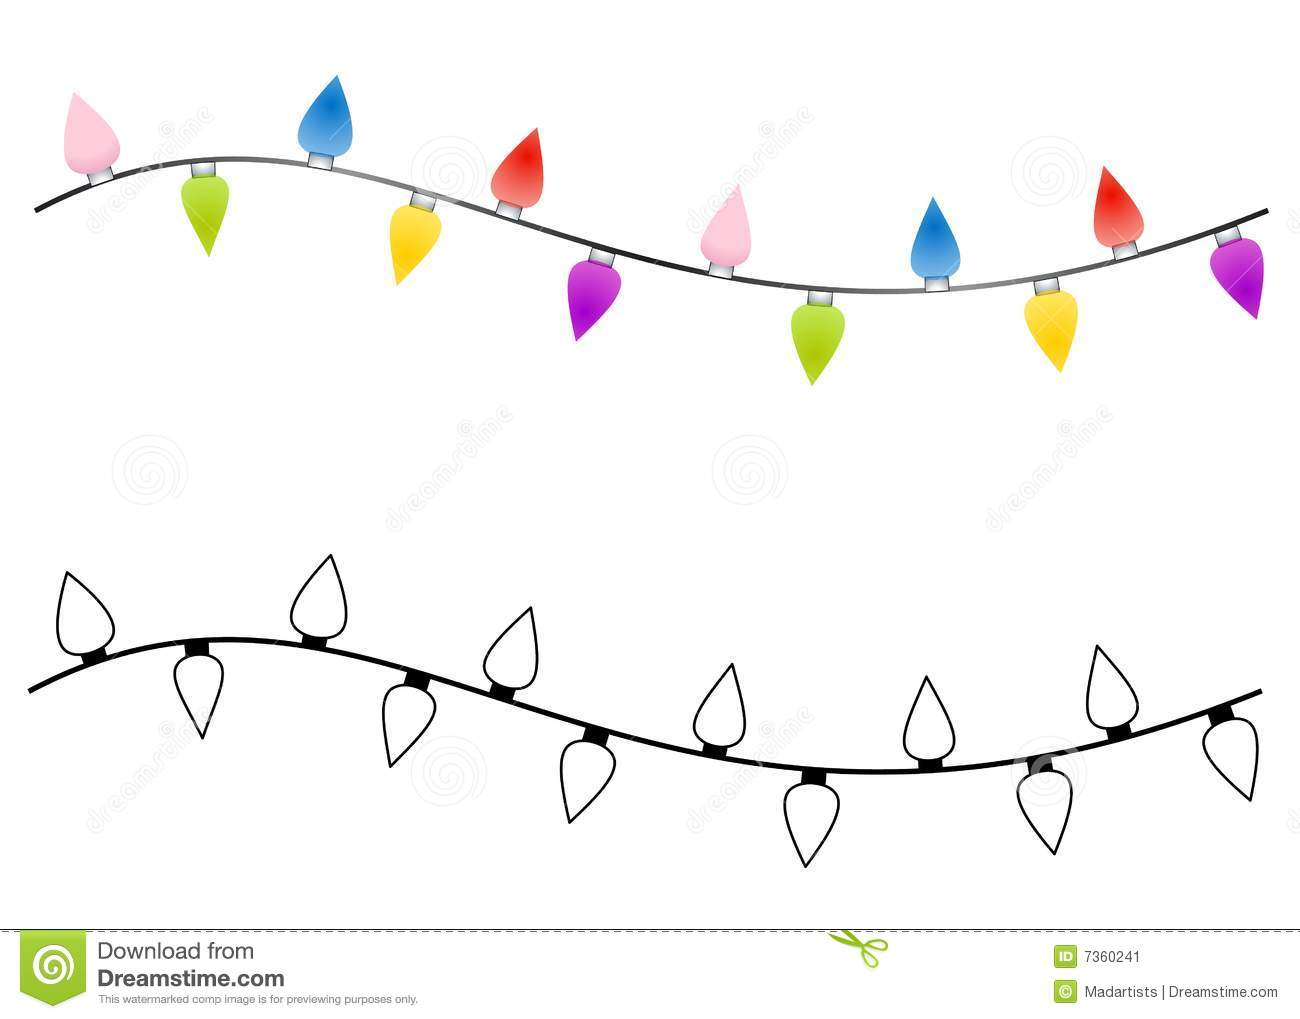 Strings Of Christmas Lights Stock Image   Image  7360241